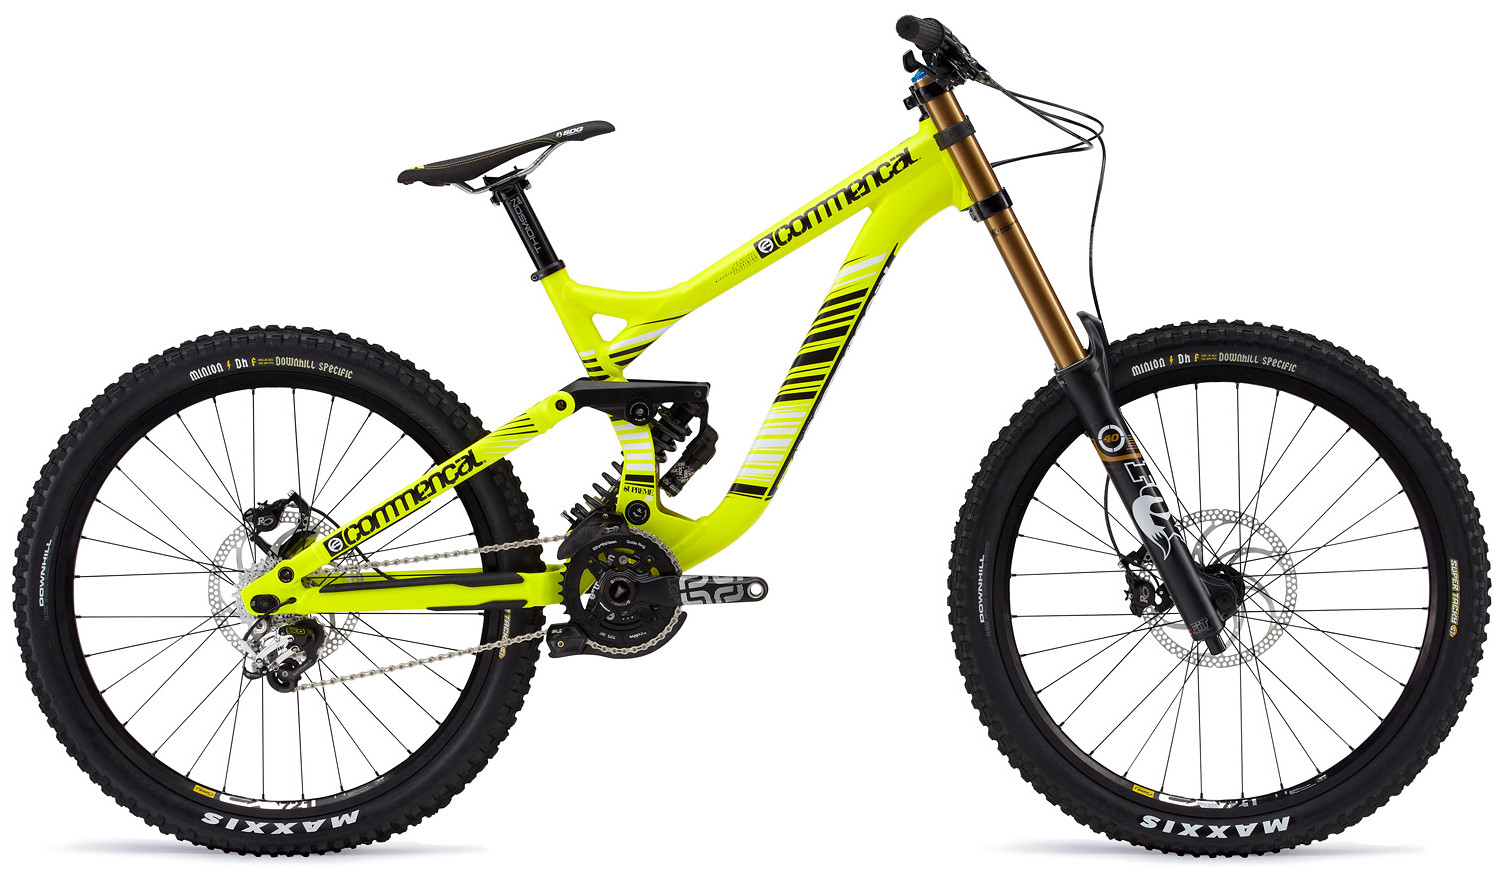 2013 Commencal Supreme DH WC  SUPREME_DHWC_013